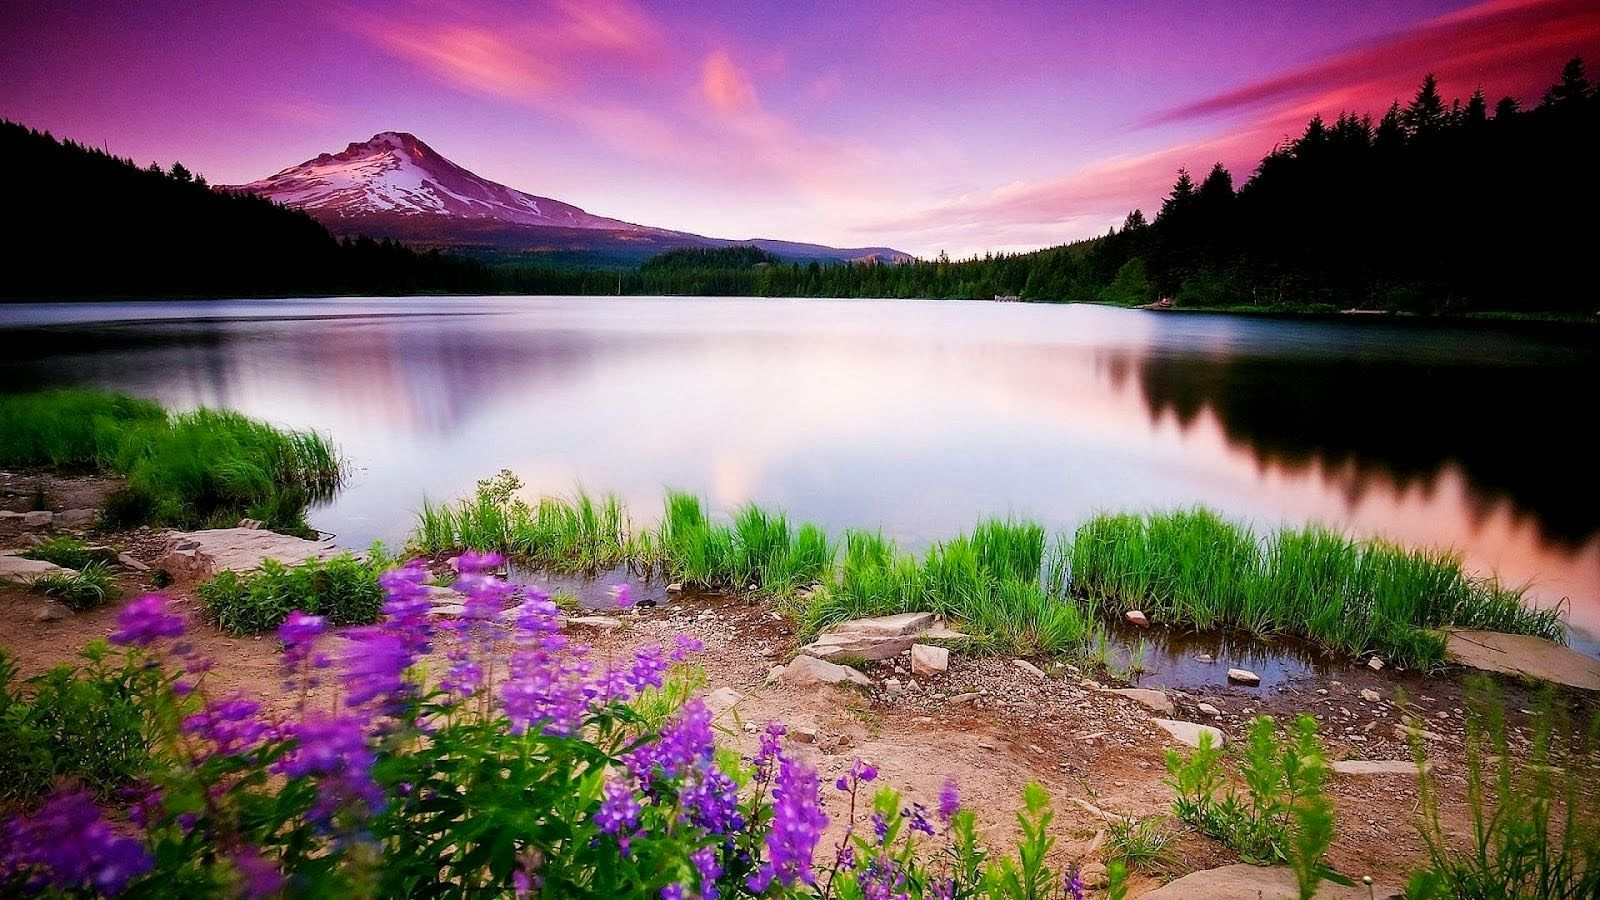 Colorful Lake Mountains Full Hd Nature Wallpapers Free Downloads For Laptop Pc Desktop Backgrounds Scenery Wallpaper Beautiful Nature Nature Backgrounds